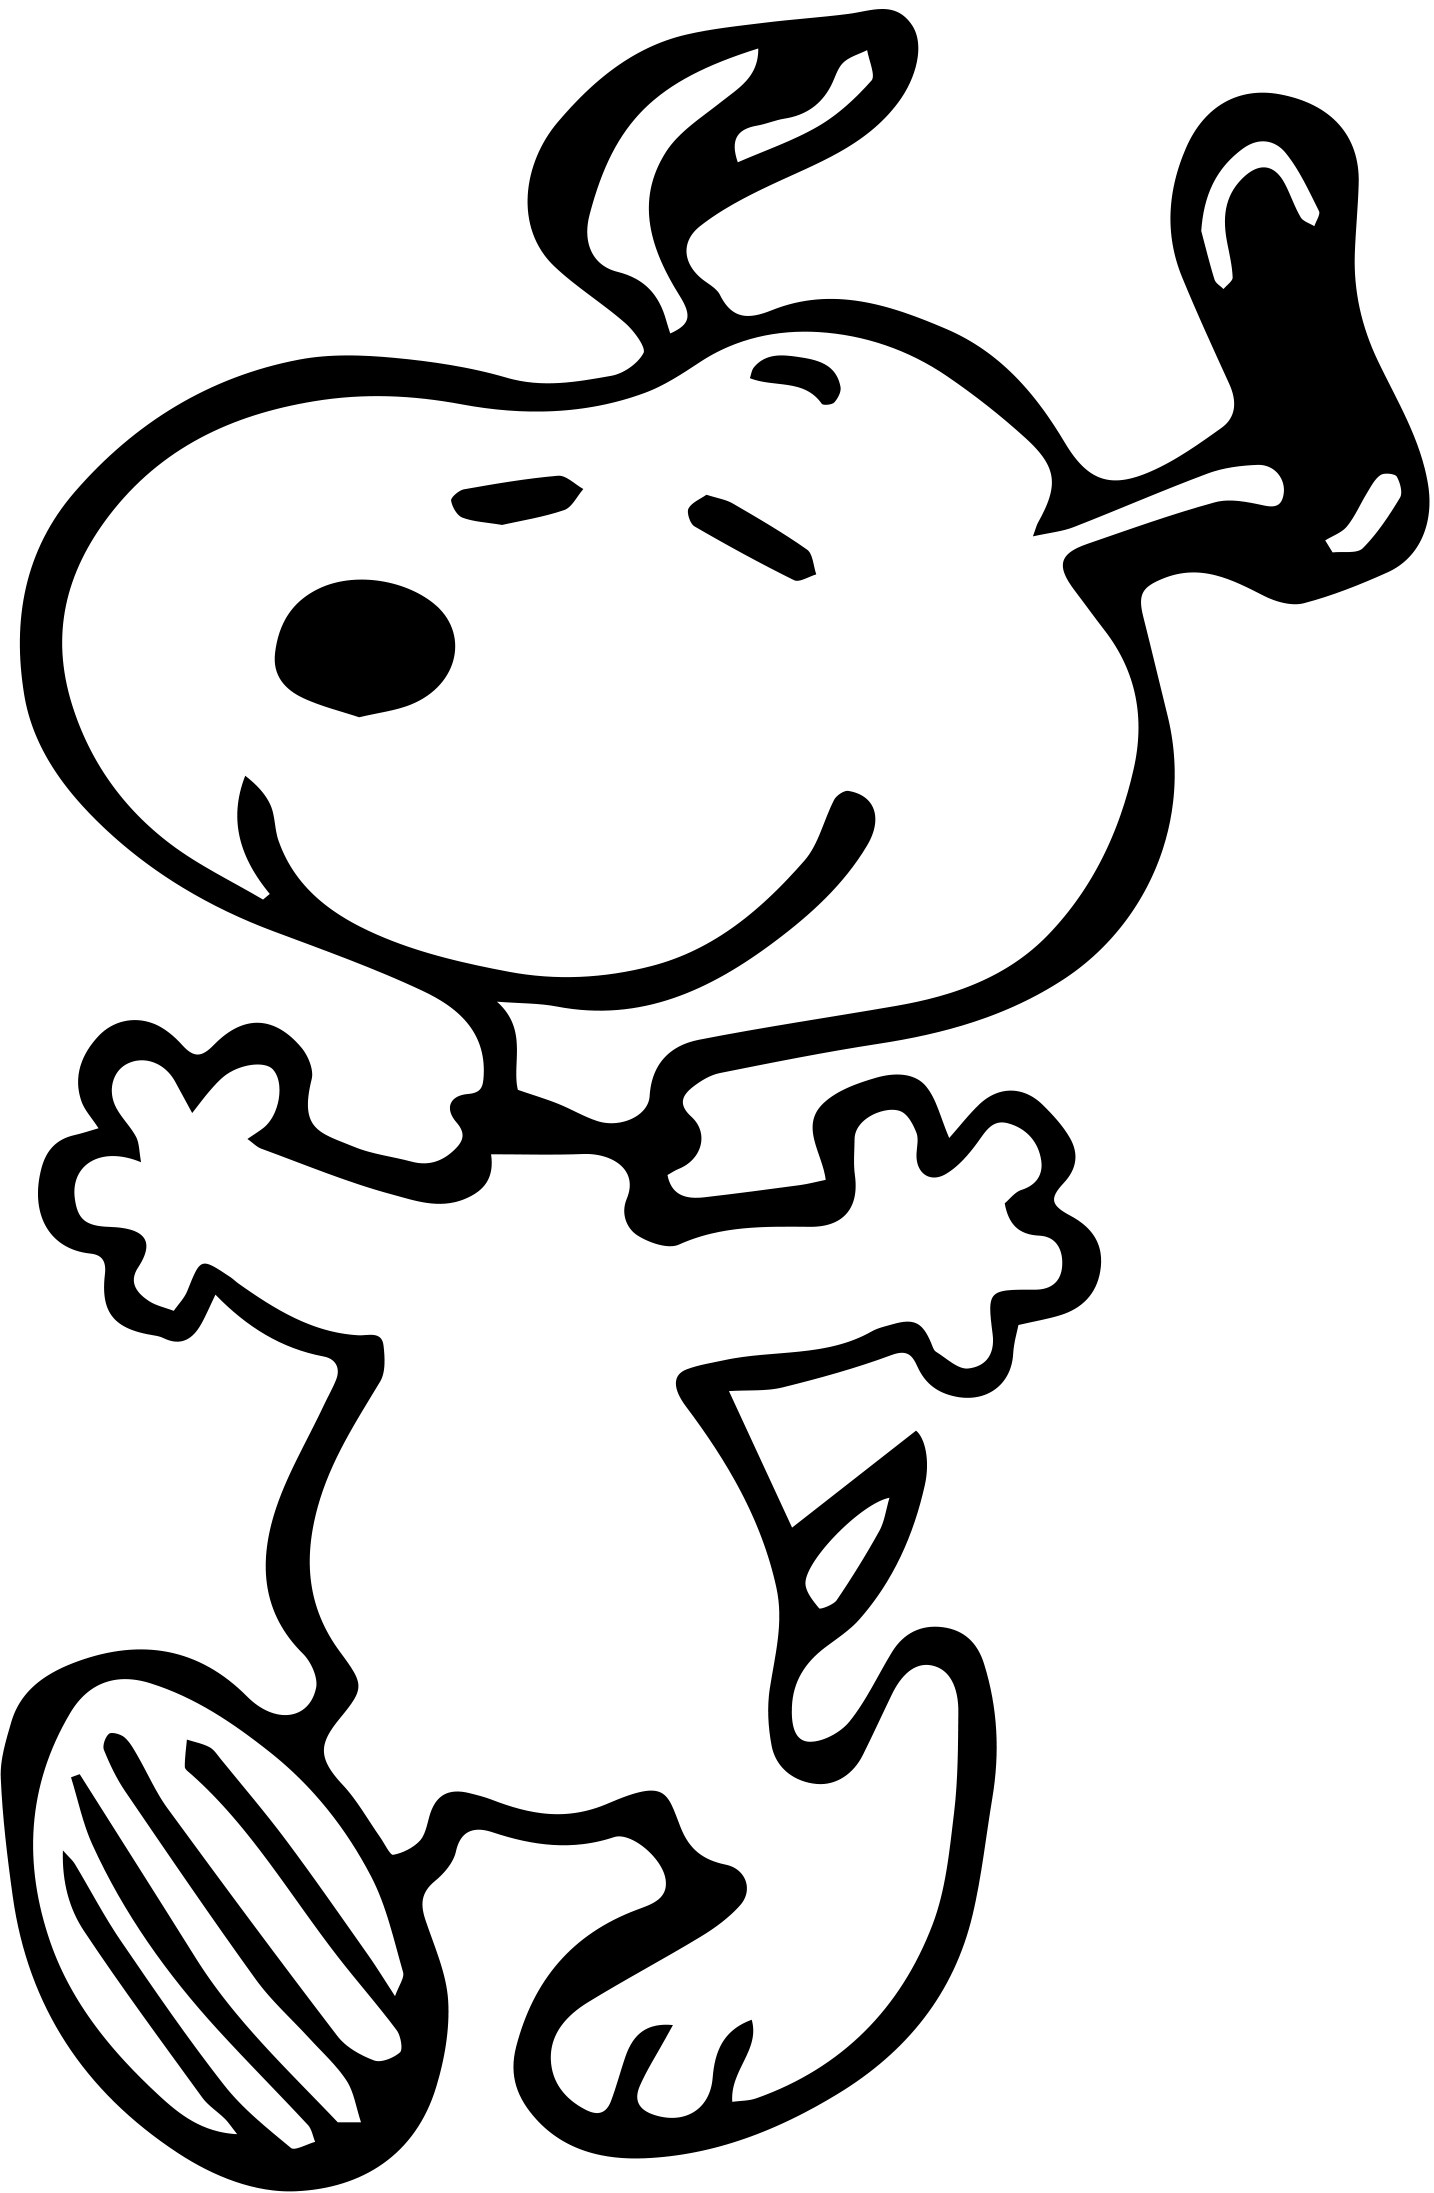 Snoopy Wallpapers - Cartoon Wallpapers